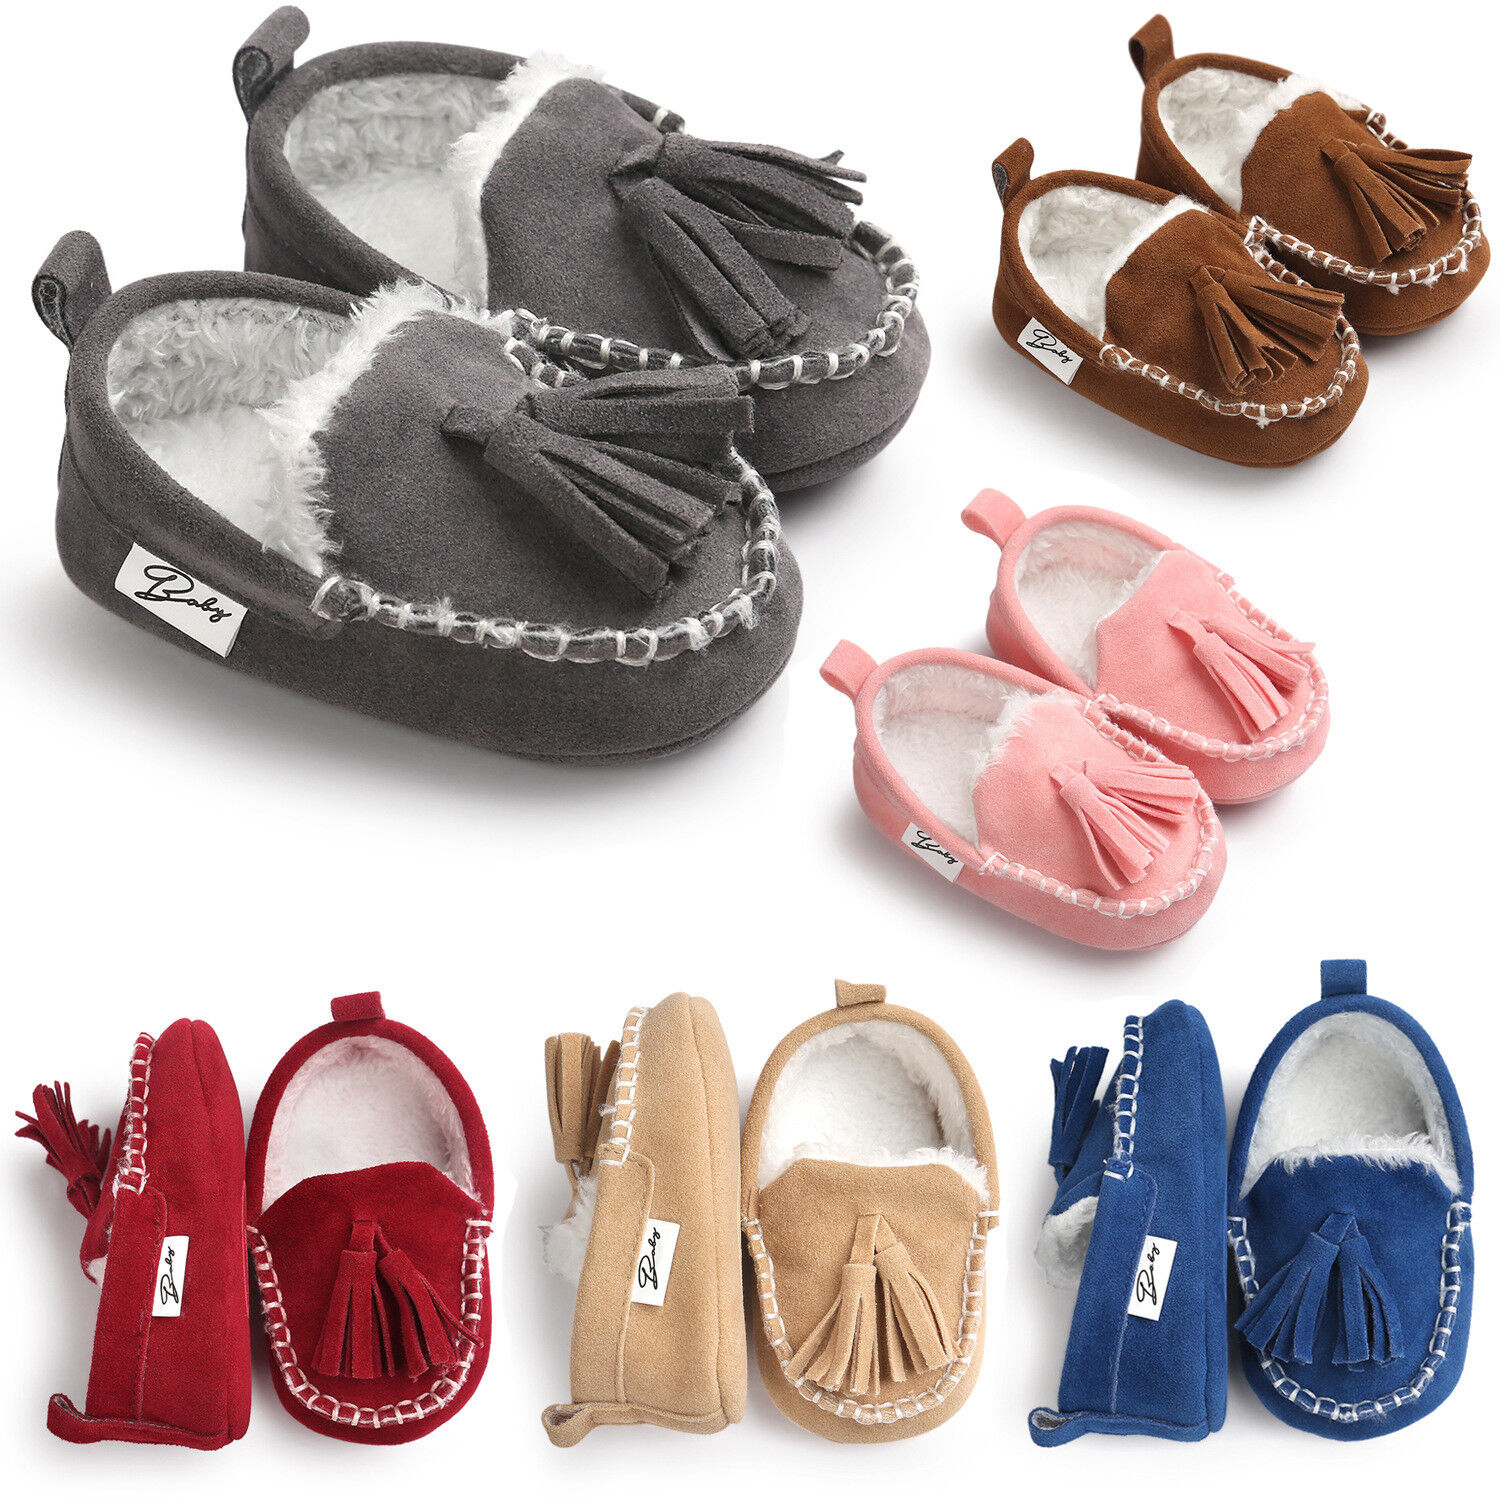 Cute Grey Baby Girls Moccasins Shoes Booties Boots Walking S